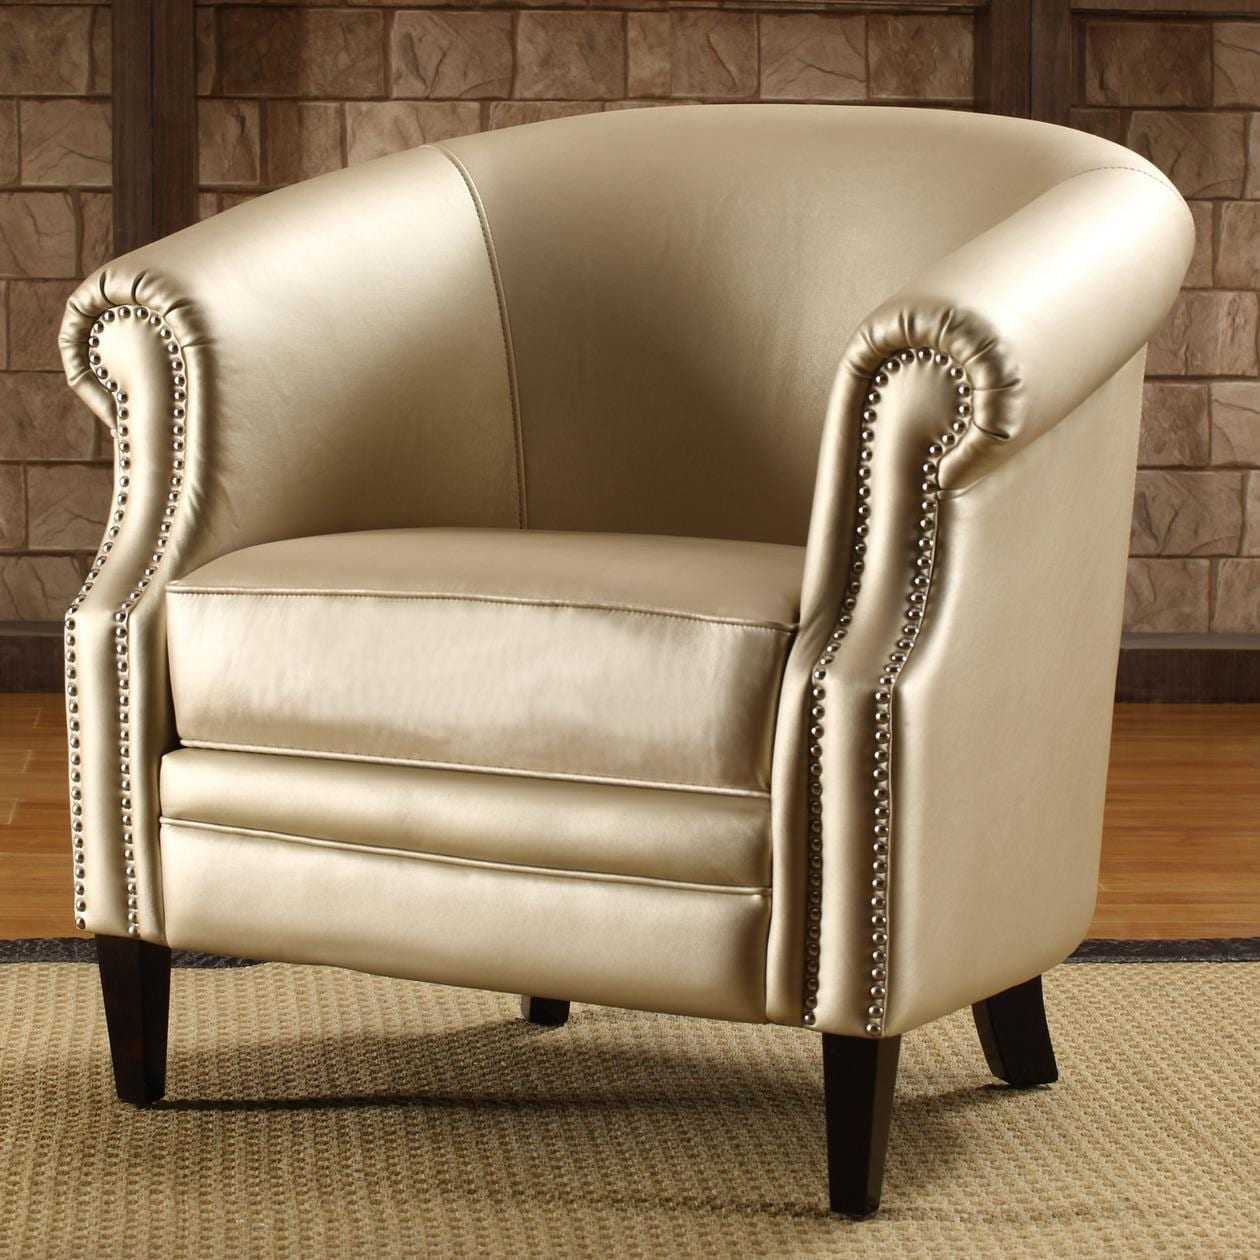 Armed Accent Chairs Trenton Gold Metallic Accent Arm Chair Free Shipping